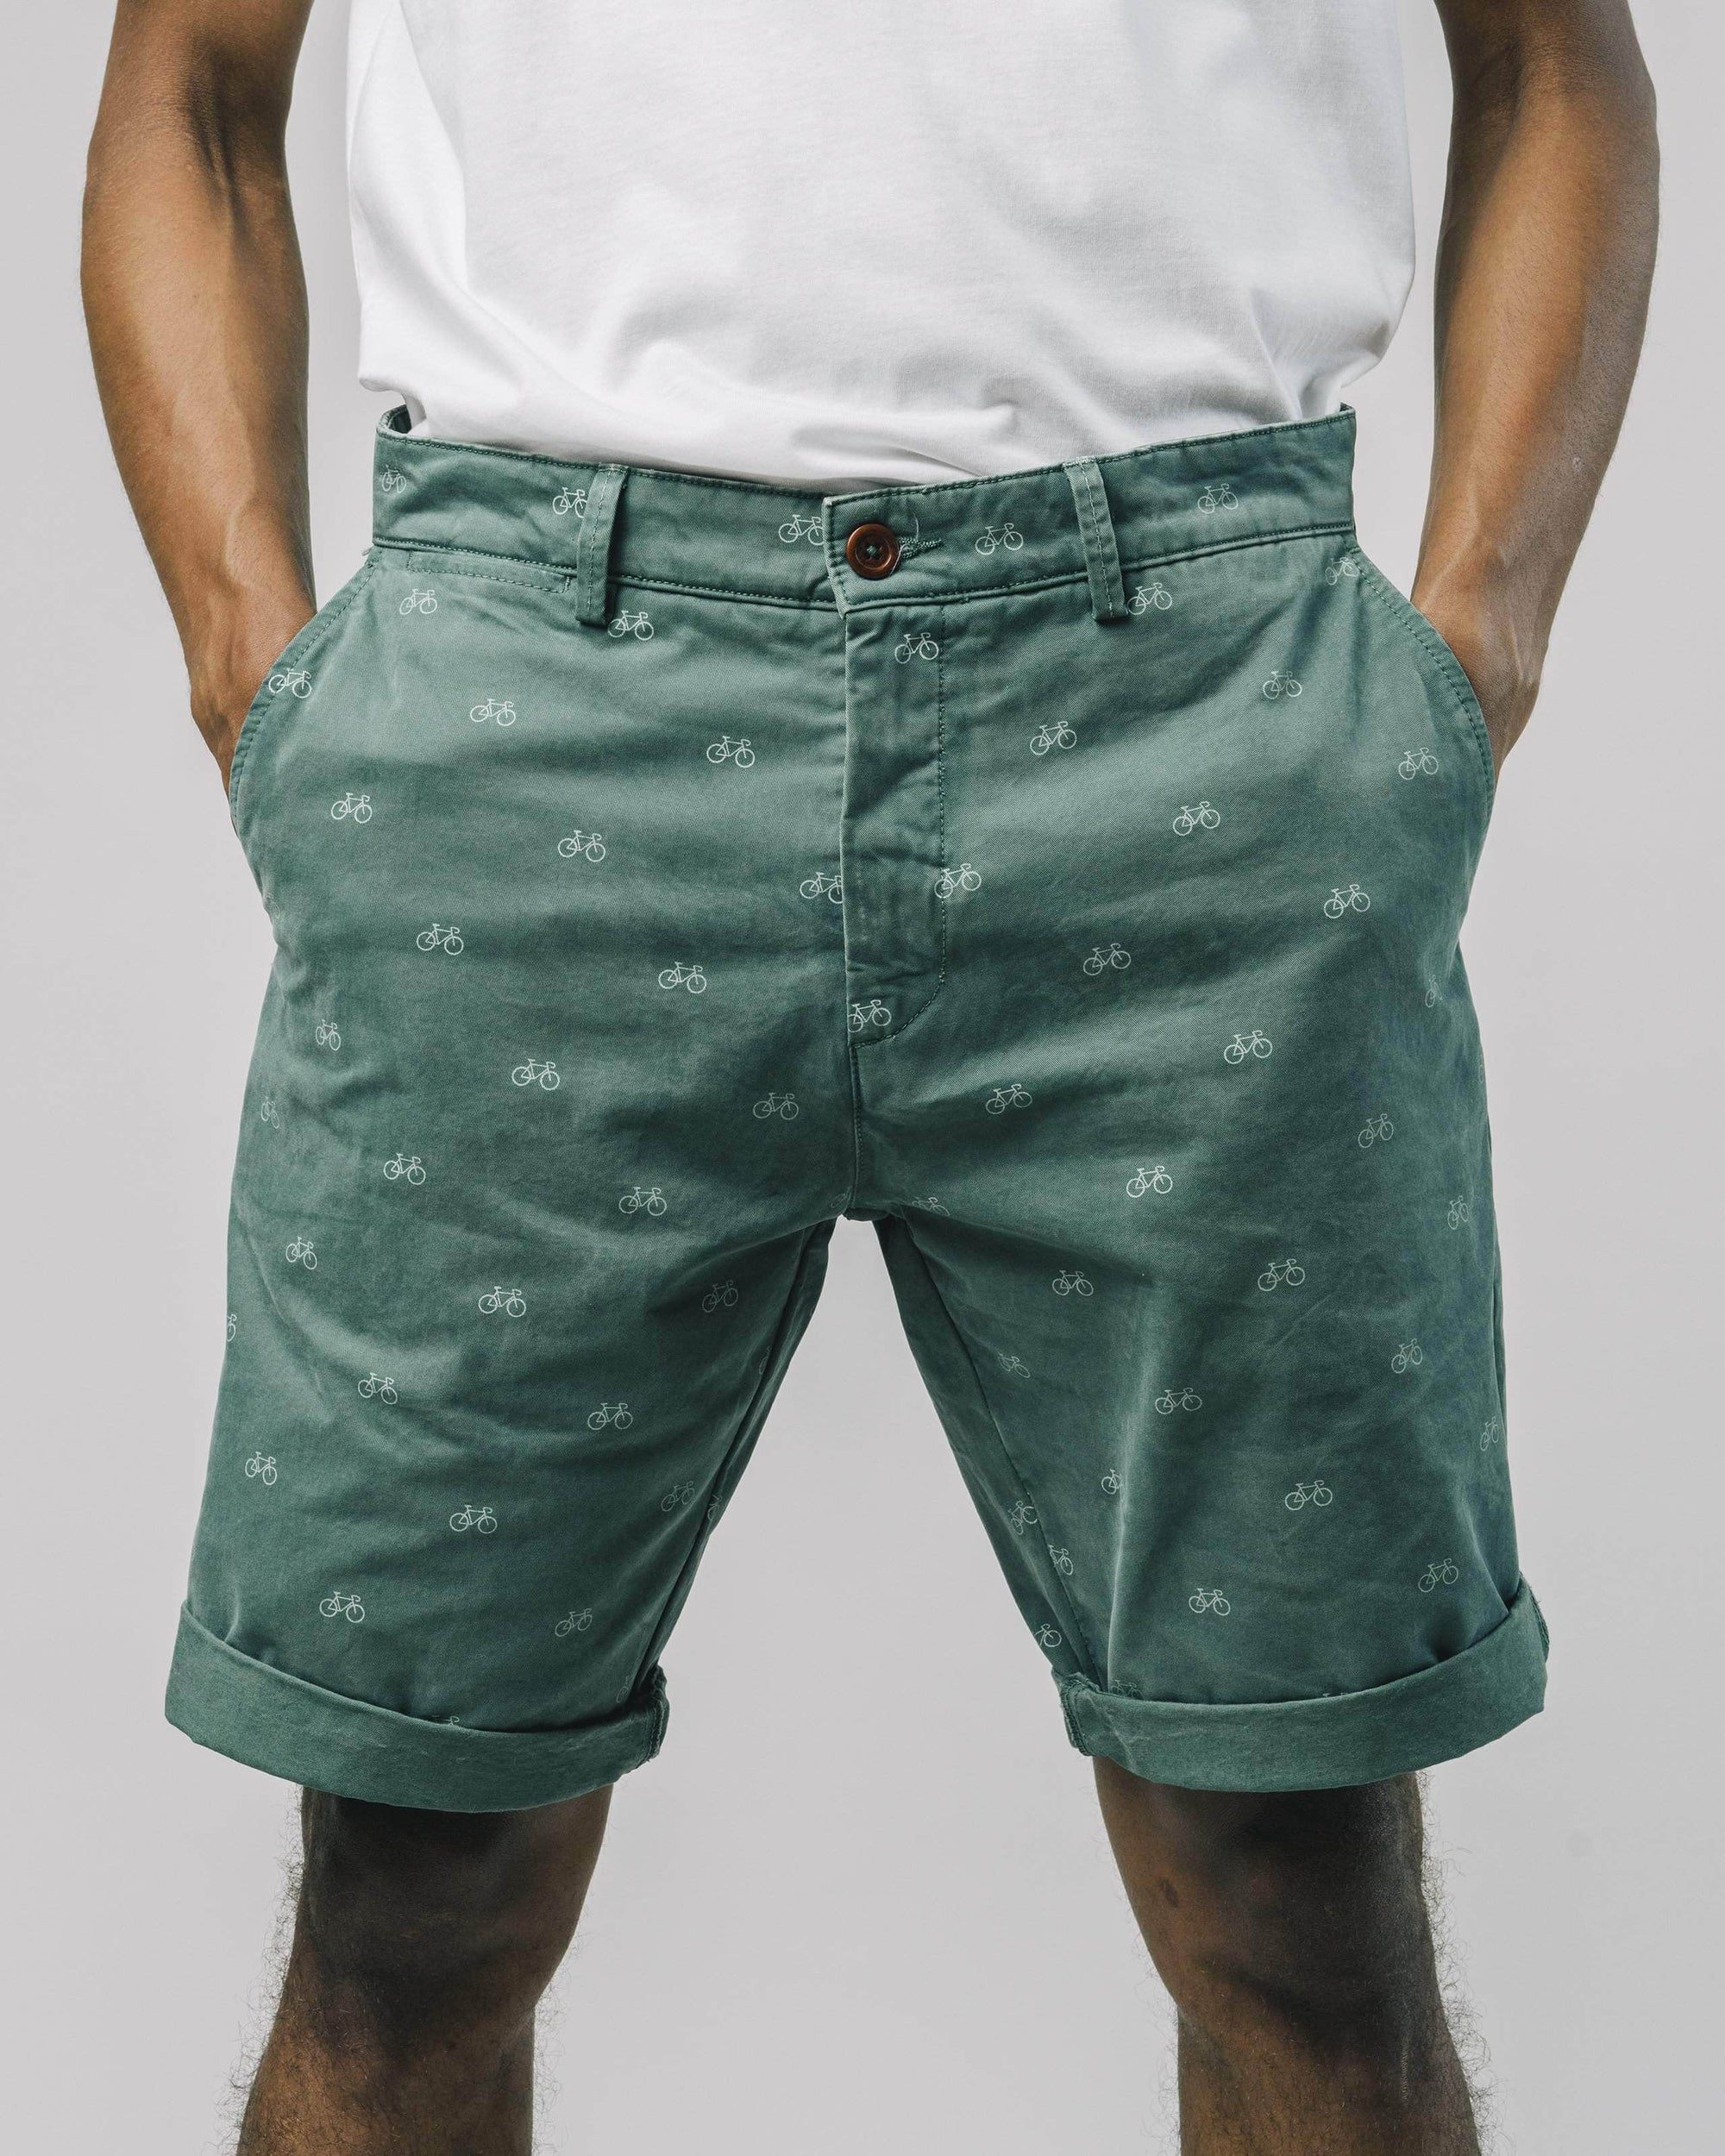 Fixed Gear Green Shorts